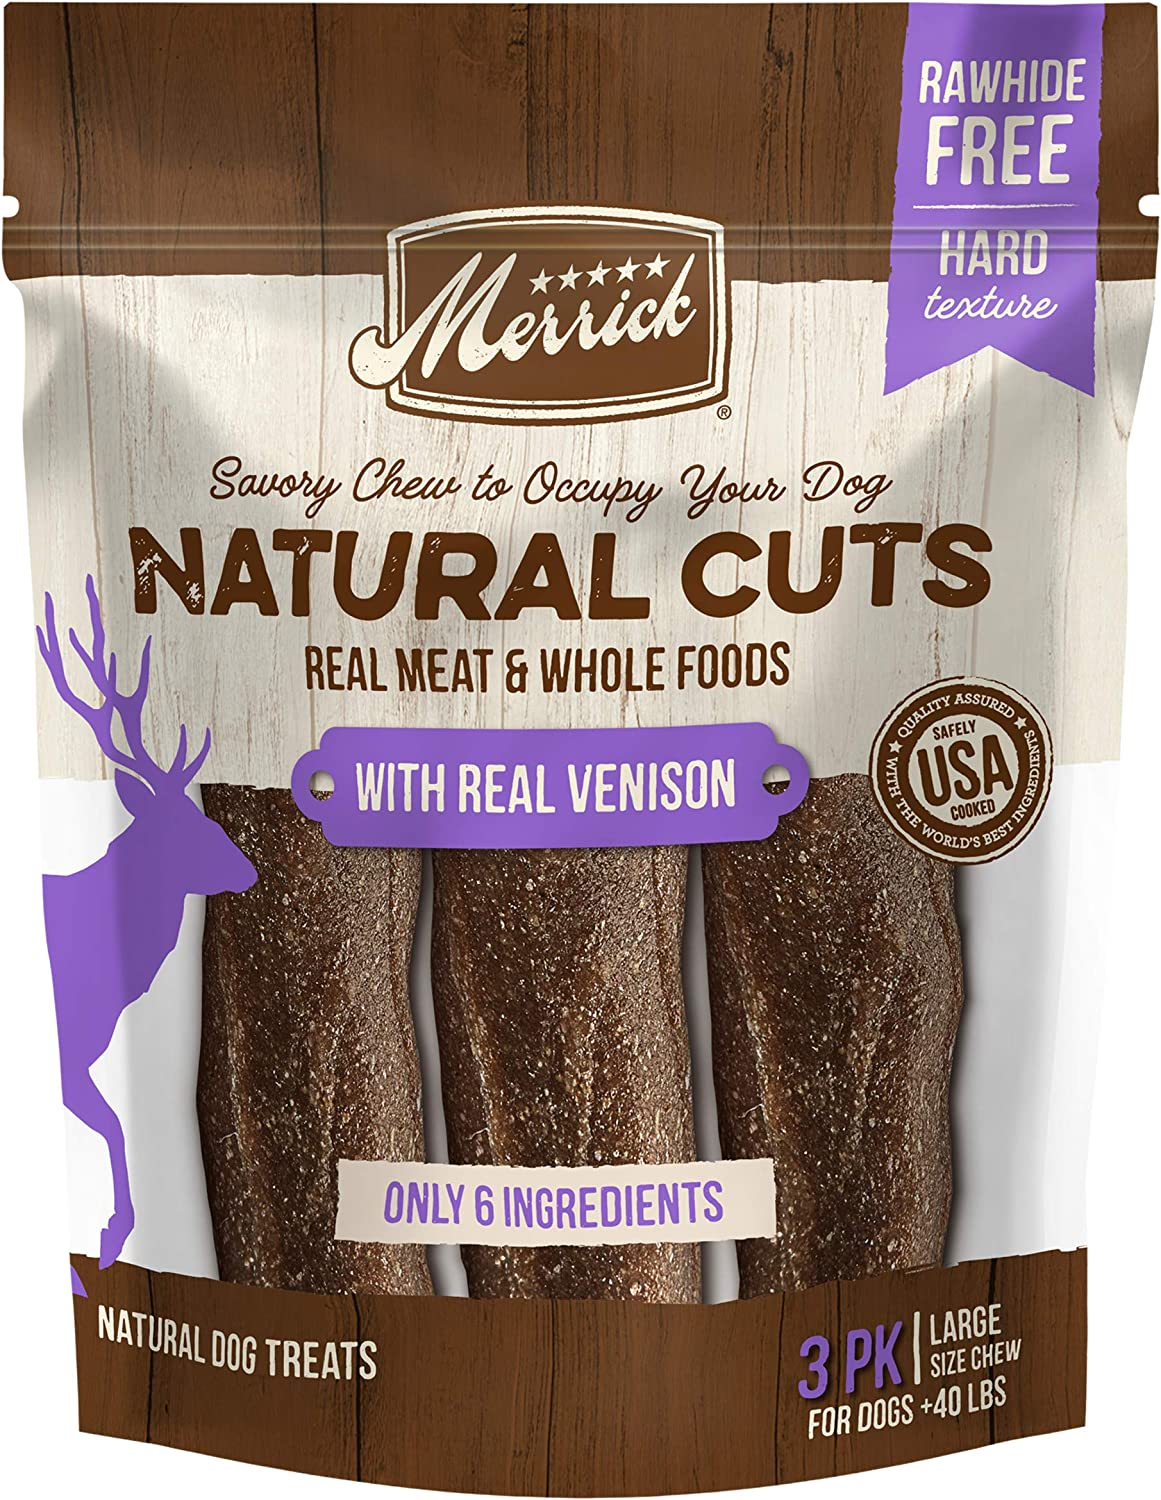 Merrick Natural Cuts Rawhide Free Dog Treats Filled Chew Made with Real Meat and Whole Foods